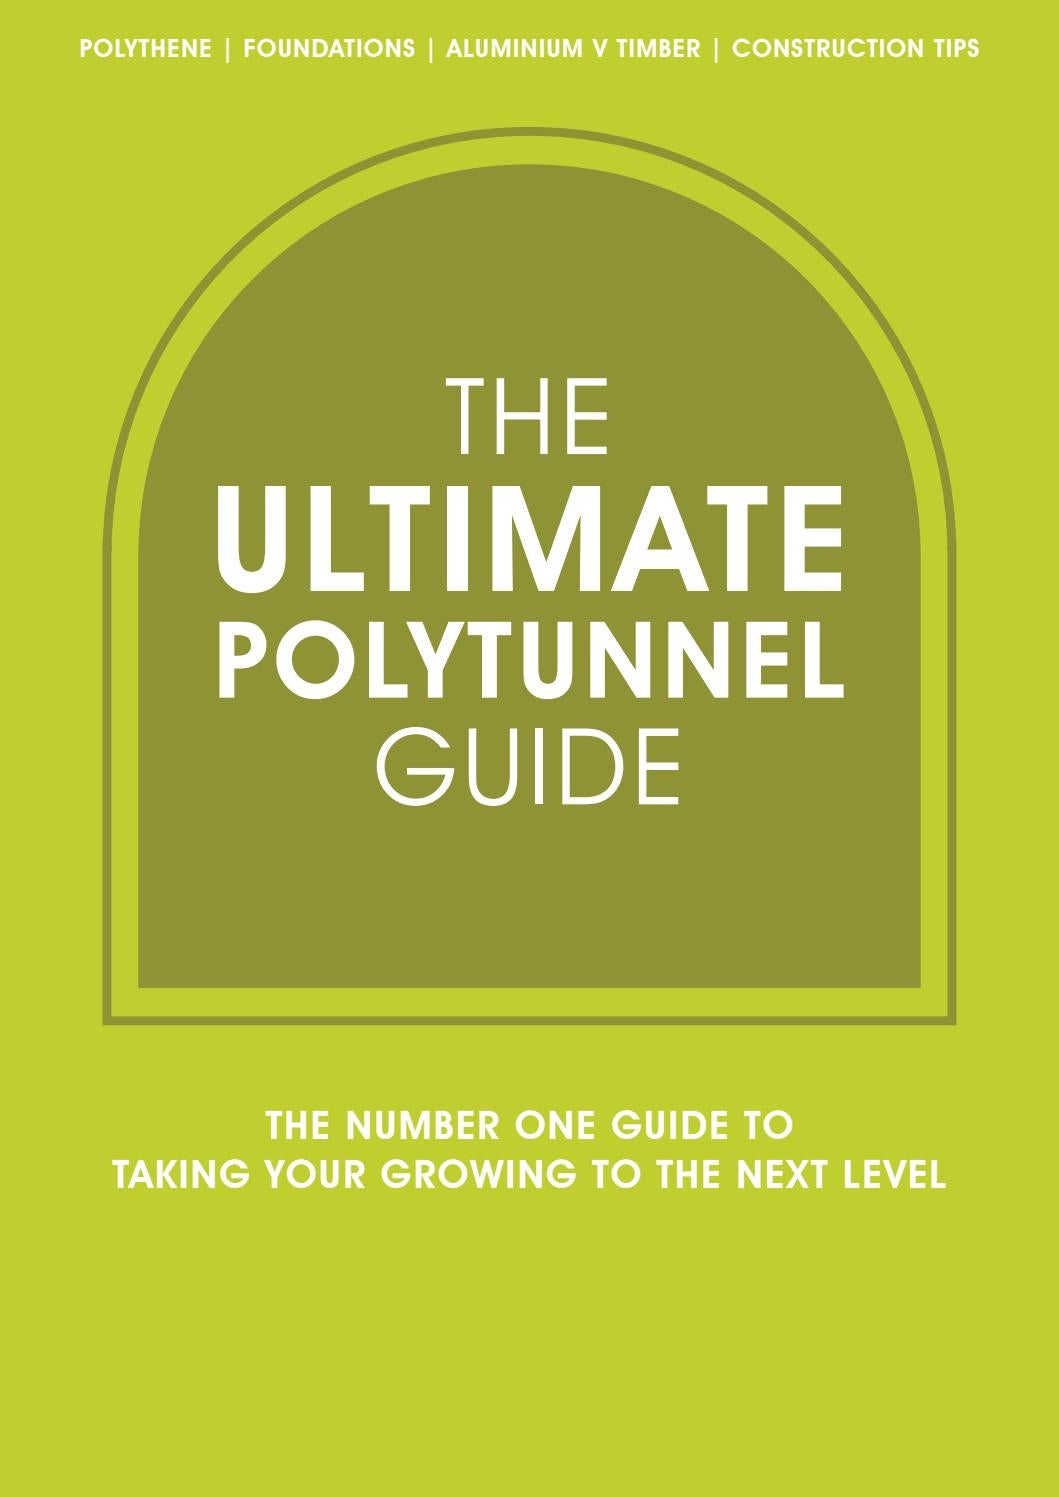 Ultimate Polytunnel Guide By Northern Polytunnels Issuu